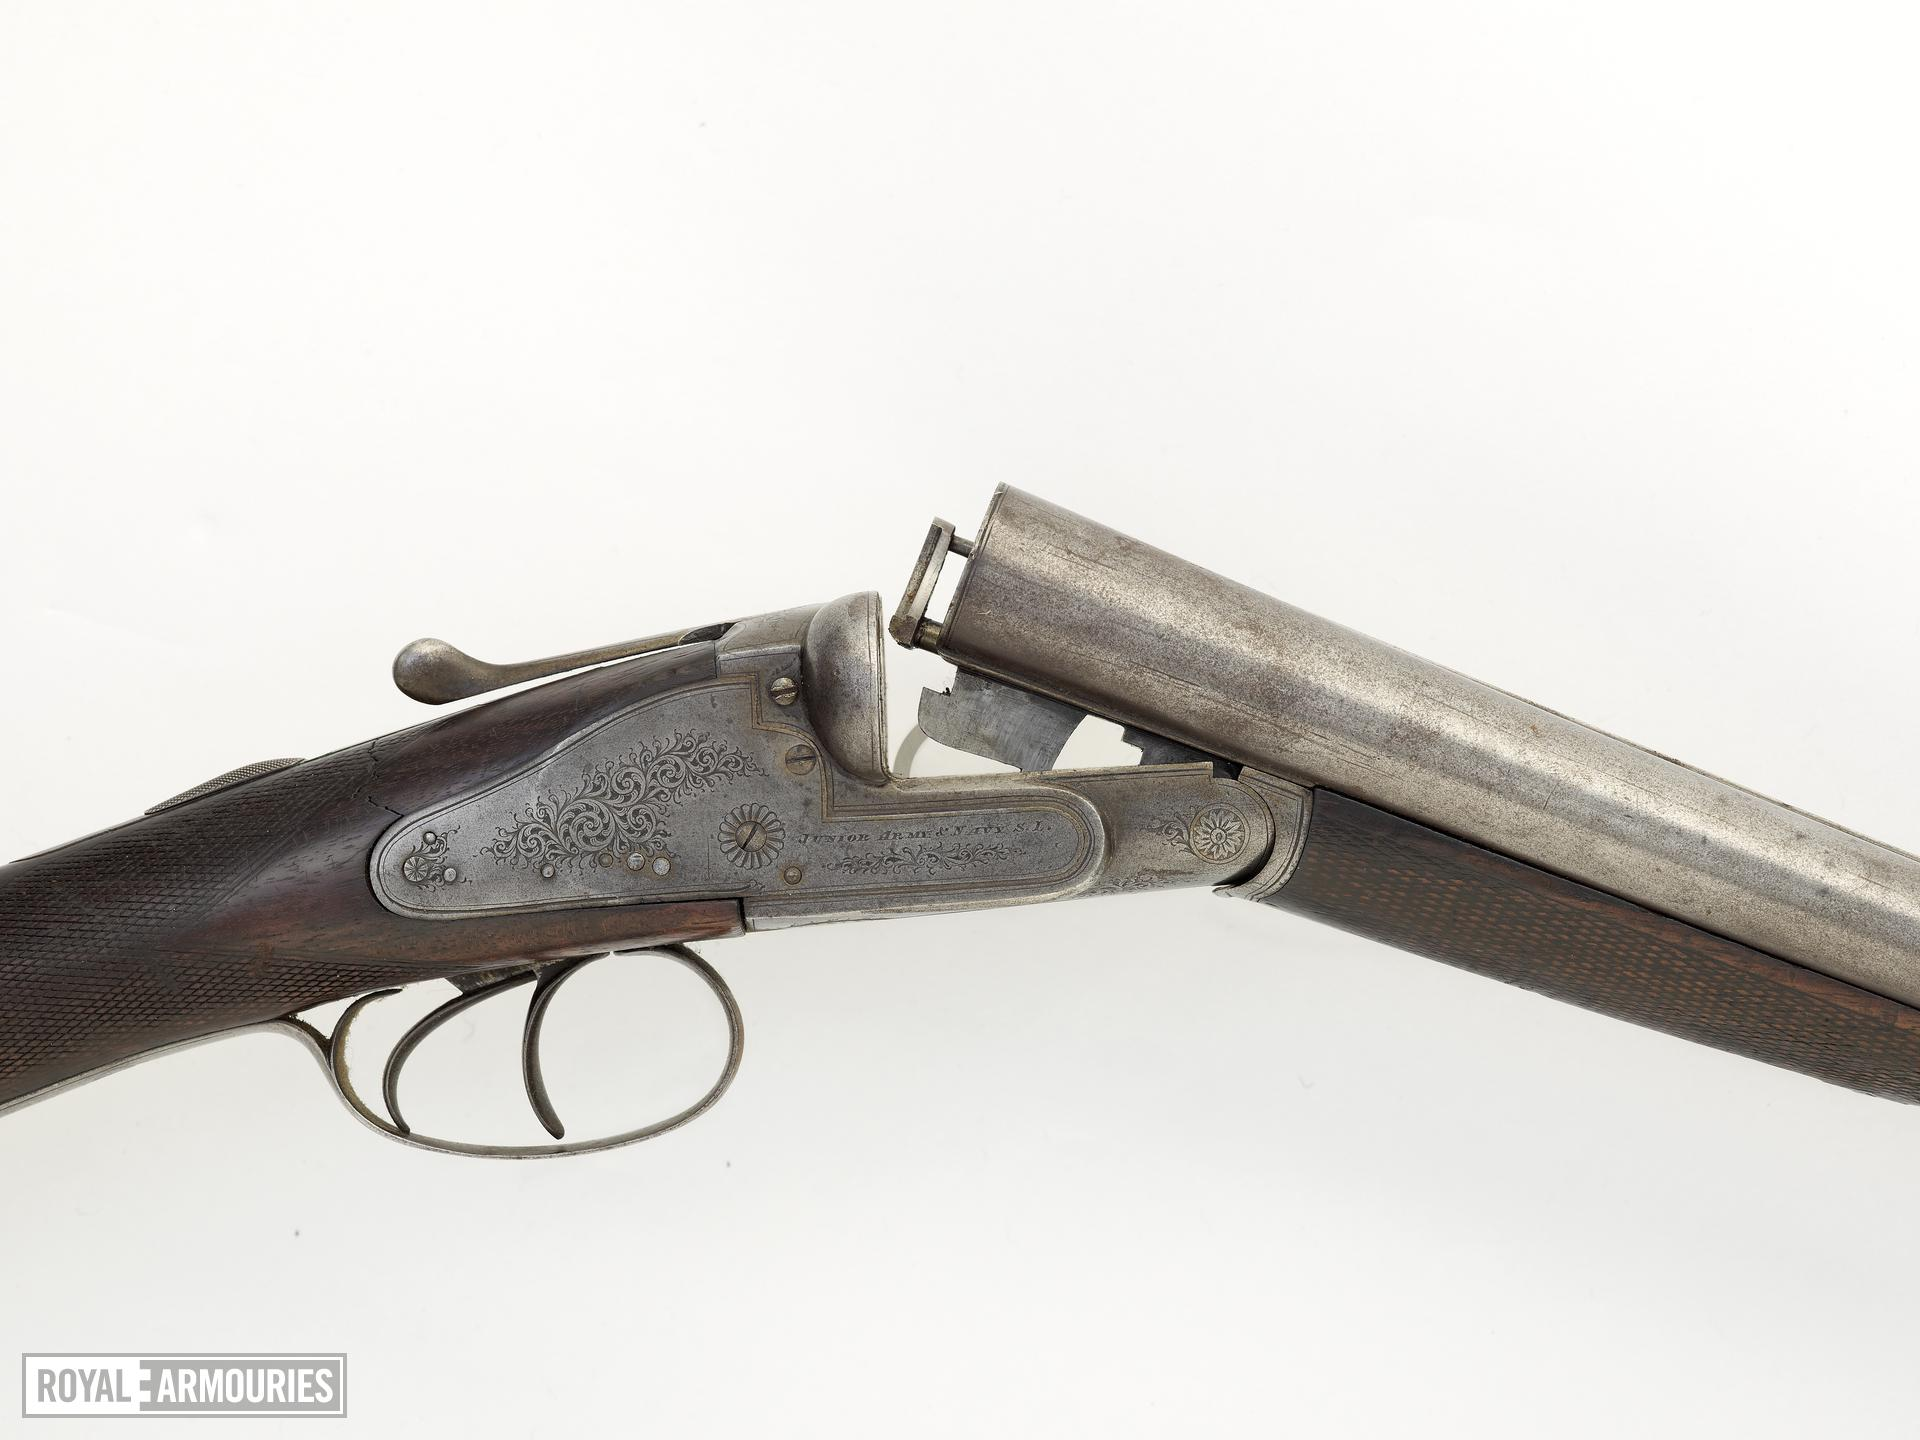 Centrefire breech-loading double-barrelled shotgun - The Junior Army and Navy S. L